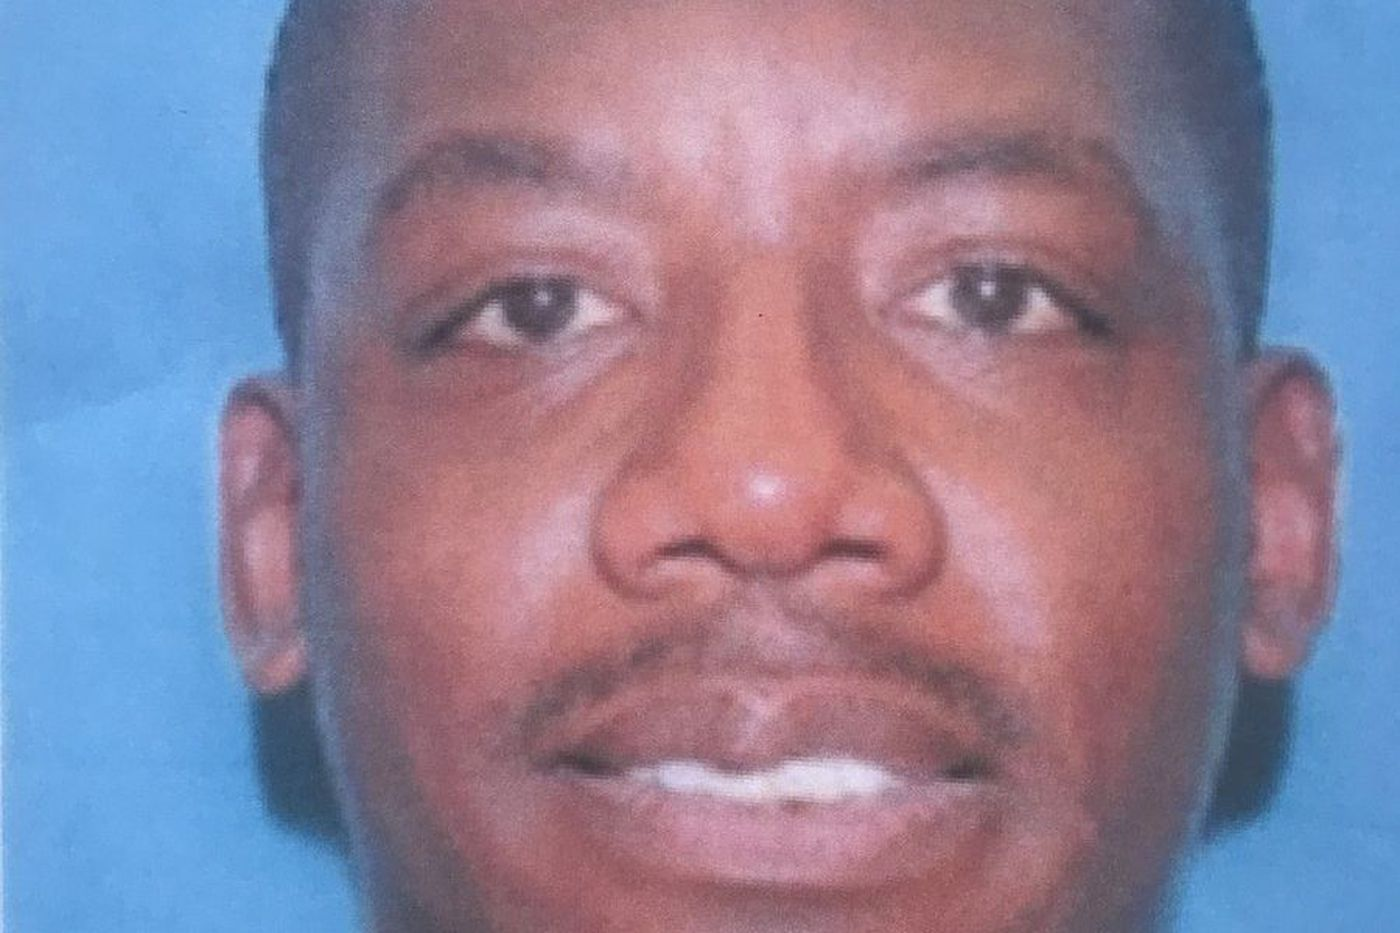 Suspect in Bensalem slaying to be tried in county court